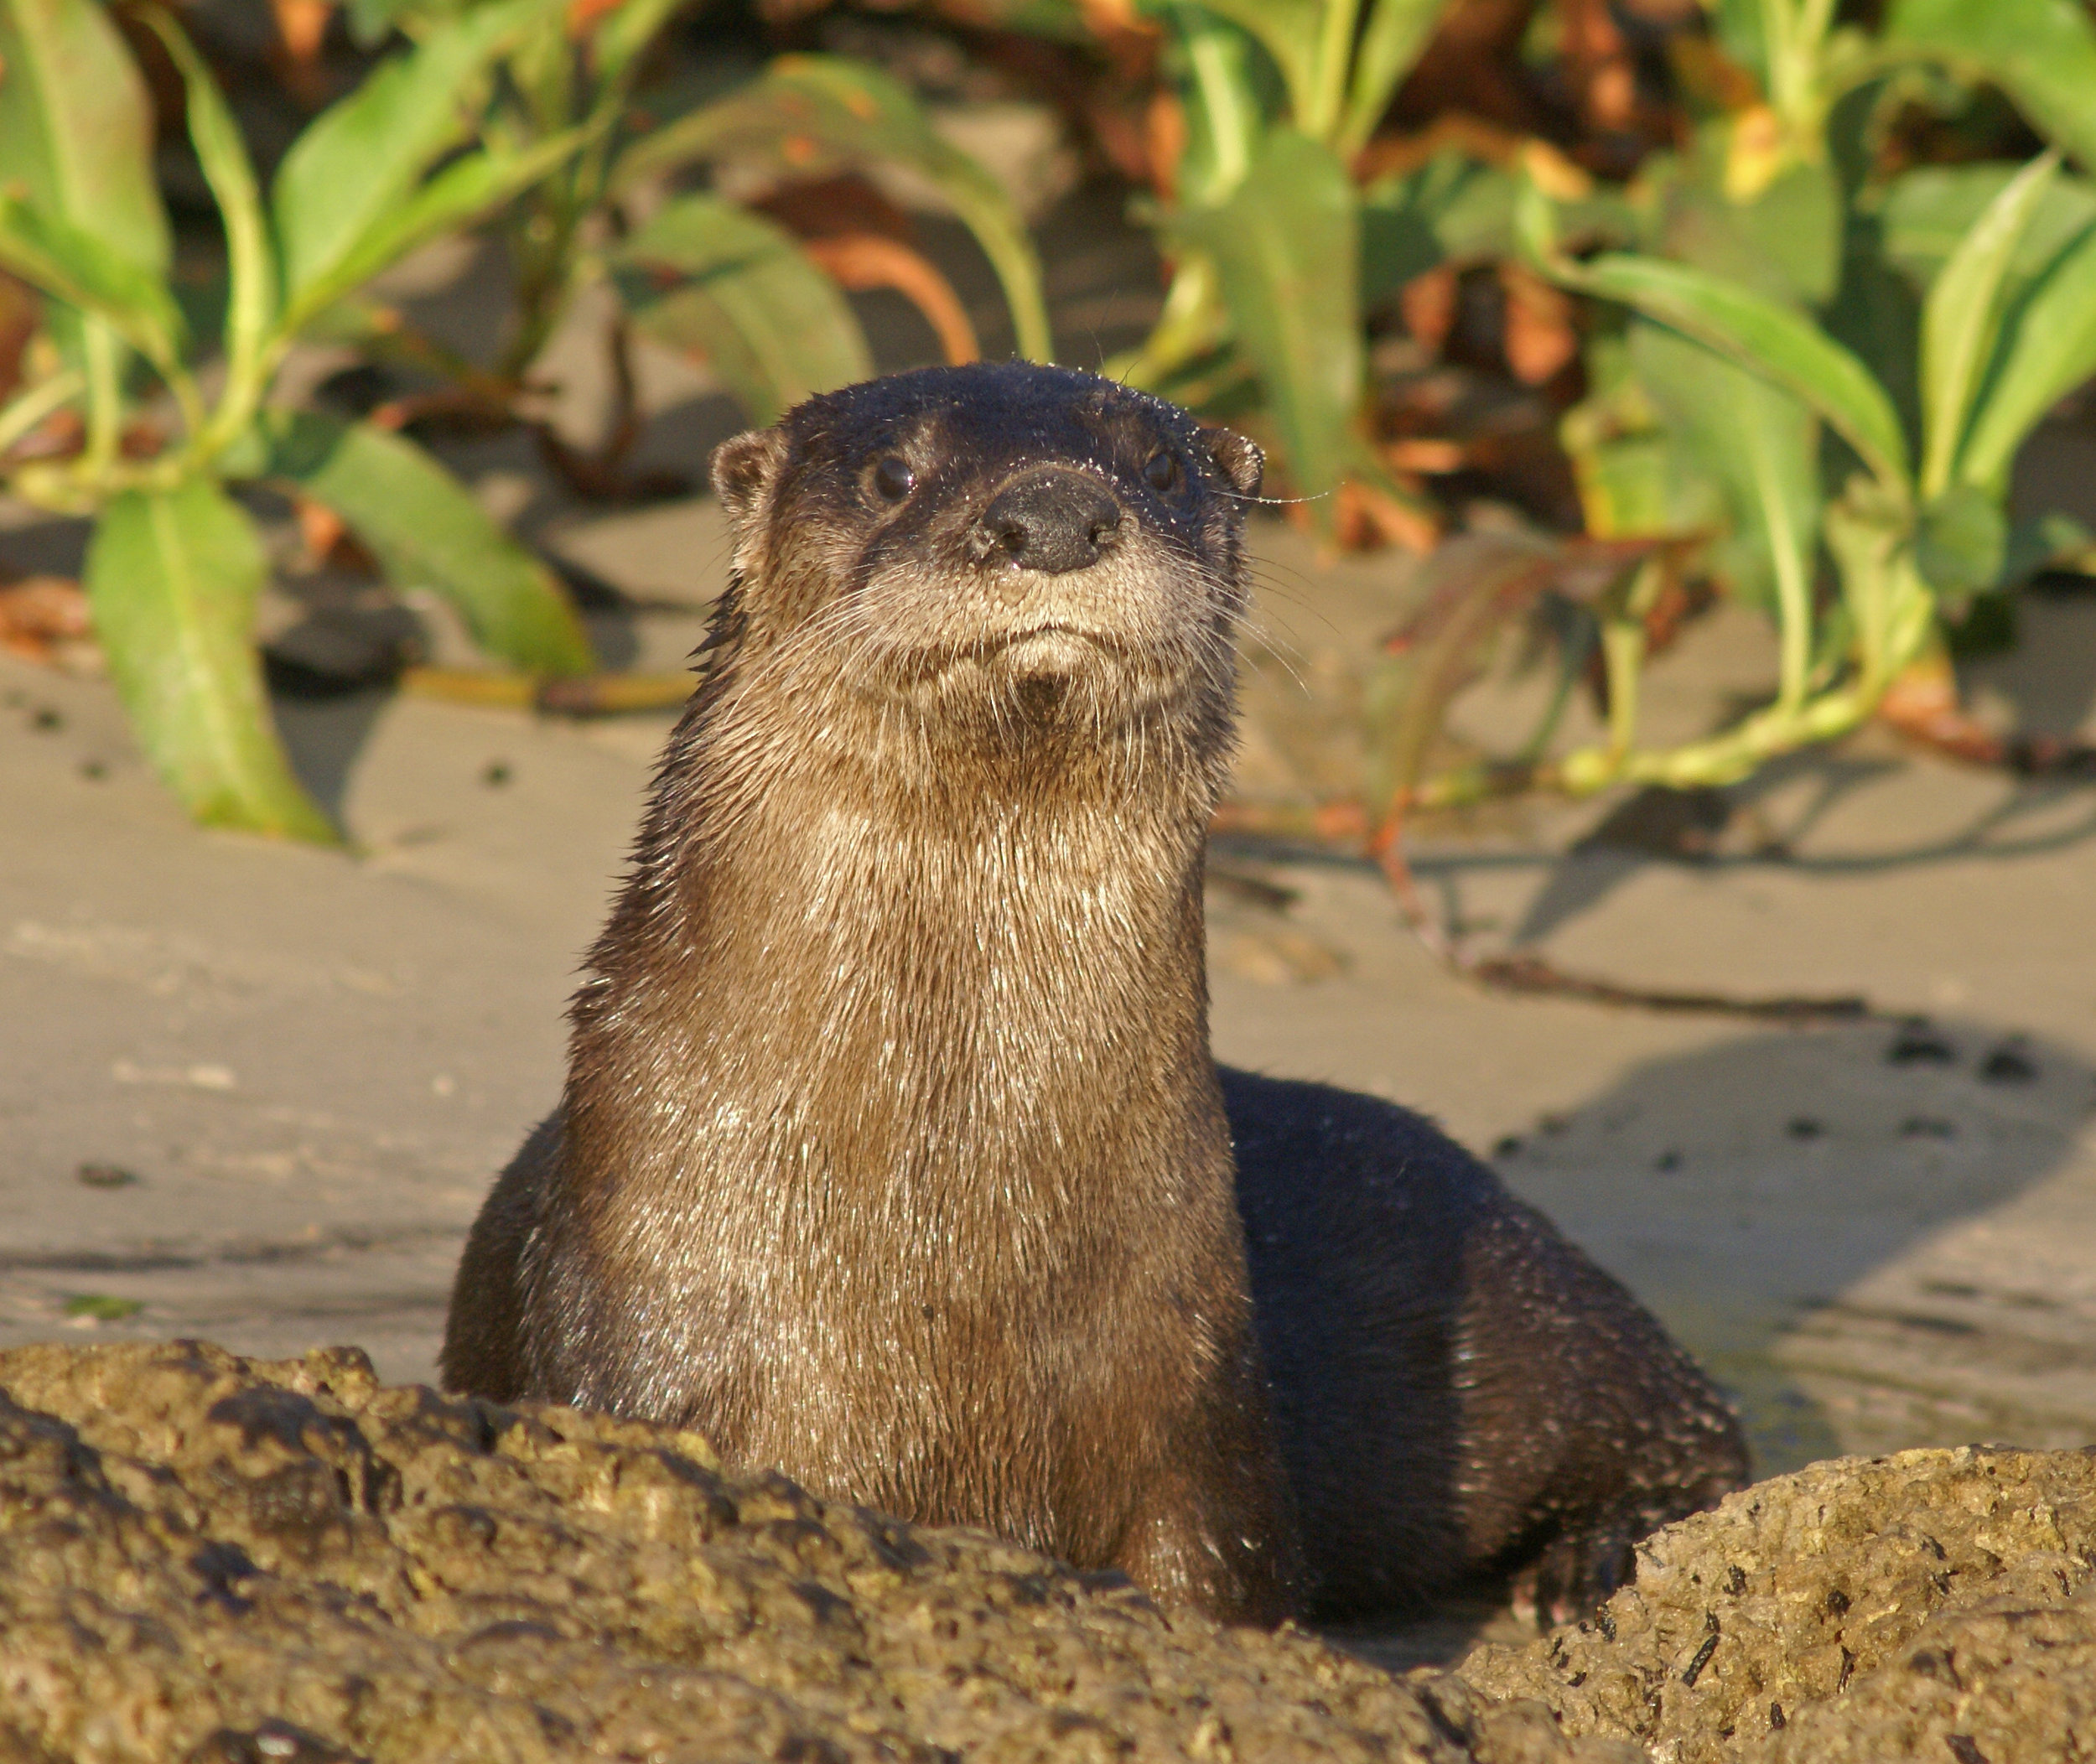 Robert R. Mindick - North American River Otter